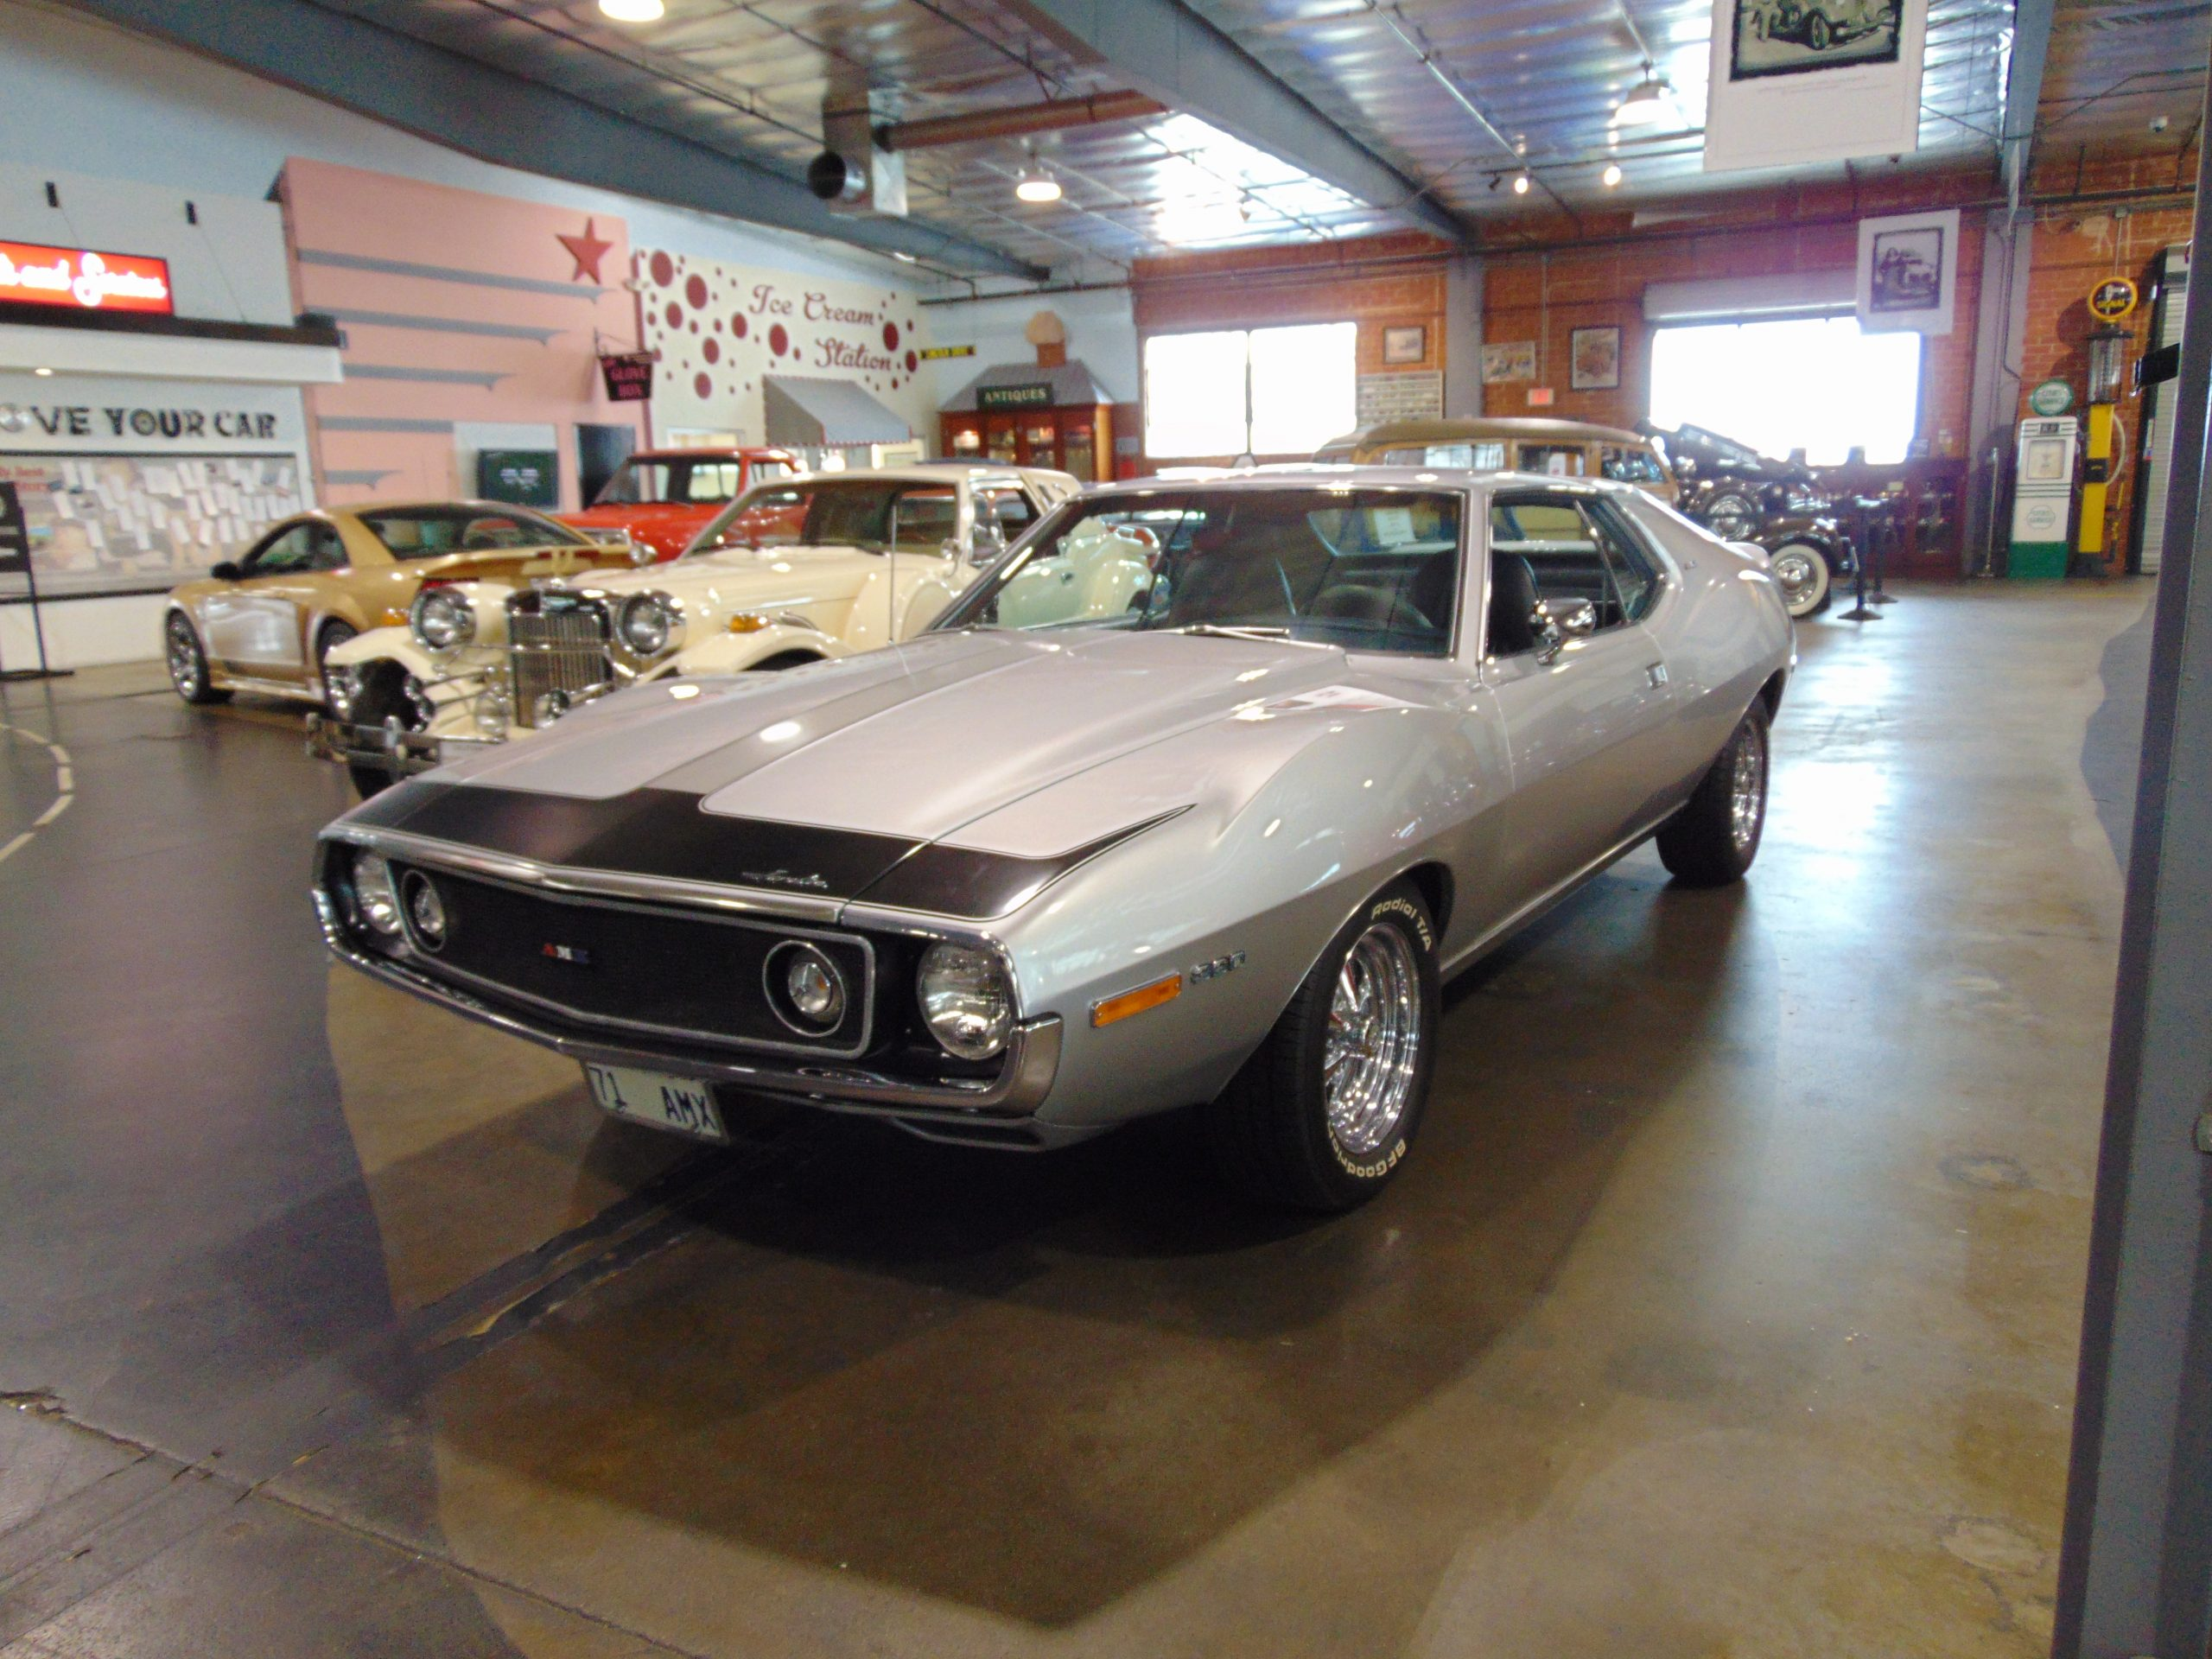 1971 AMX Javelin for rent